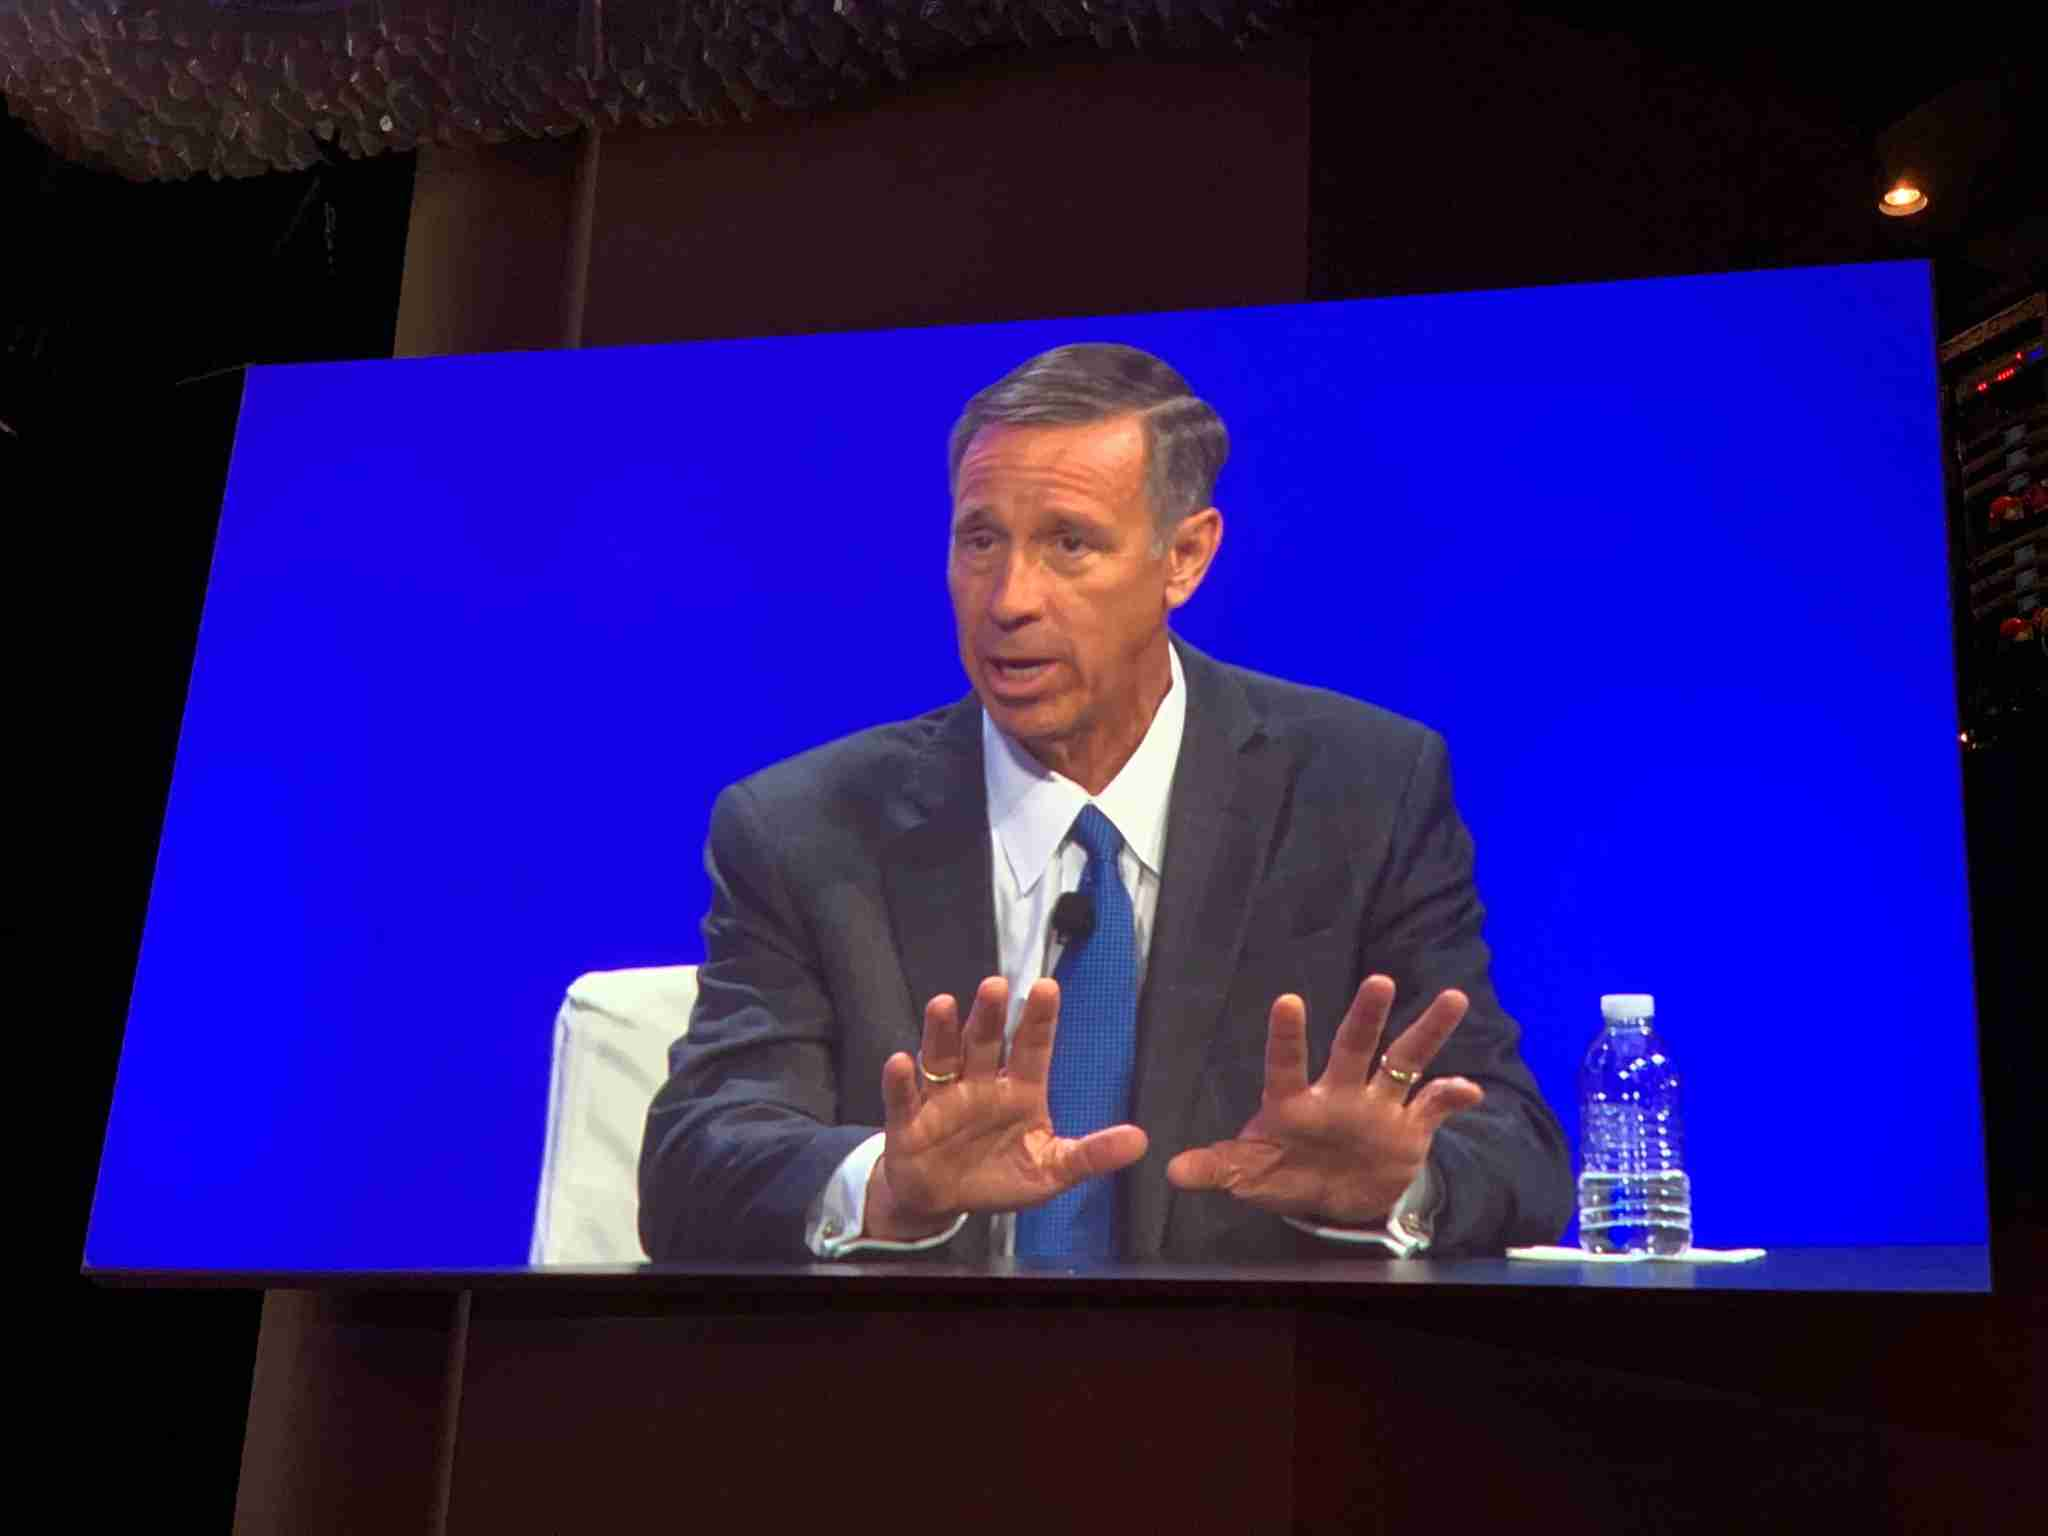 Marriott CEO Arne Sorenson speaks on June 3, 2019 at the 41st annual NYU International Hospitality Industry Investment Conference in New York.